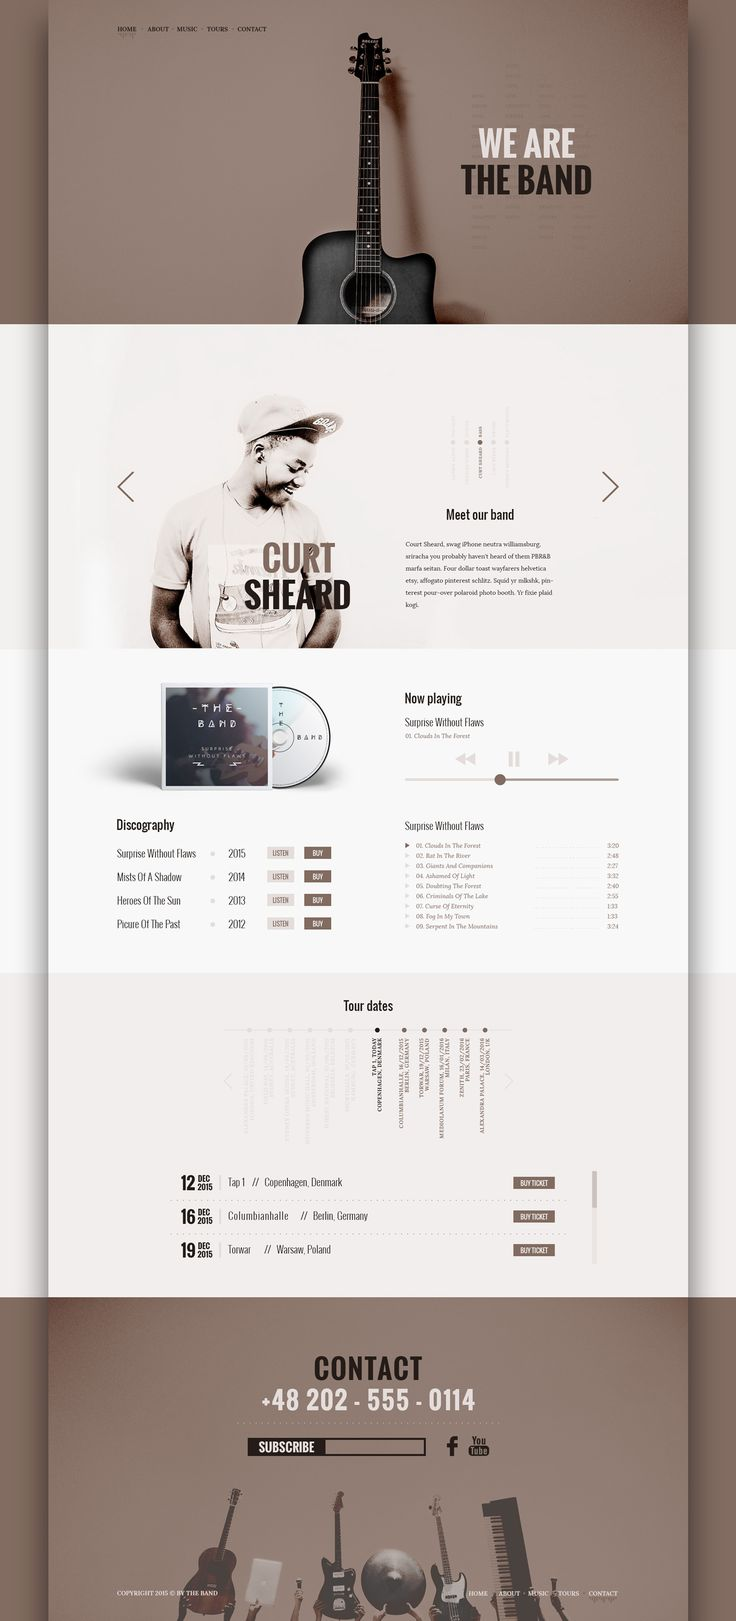 https://www.behance.net/gallery/31968773/The-Band-Free-PSD-Template-for-music-related-websites